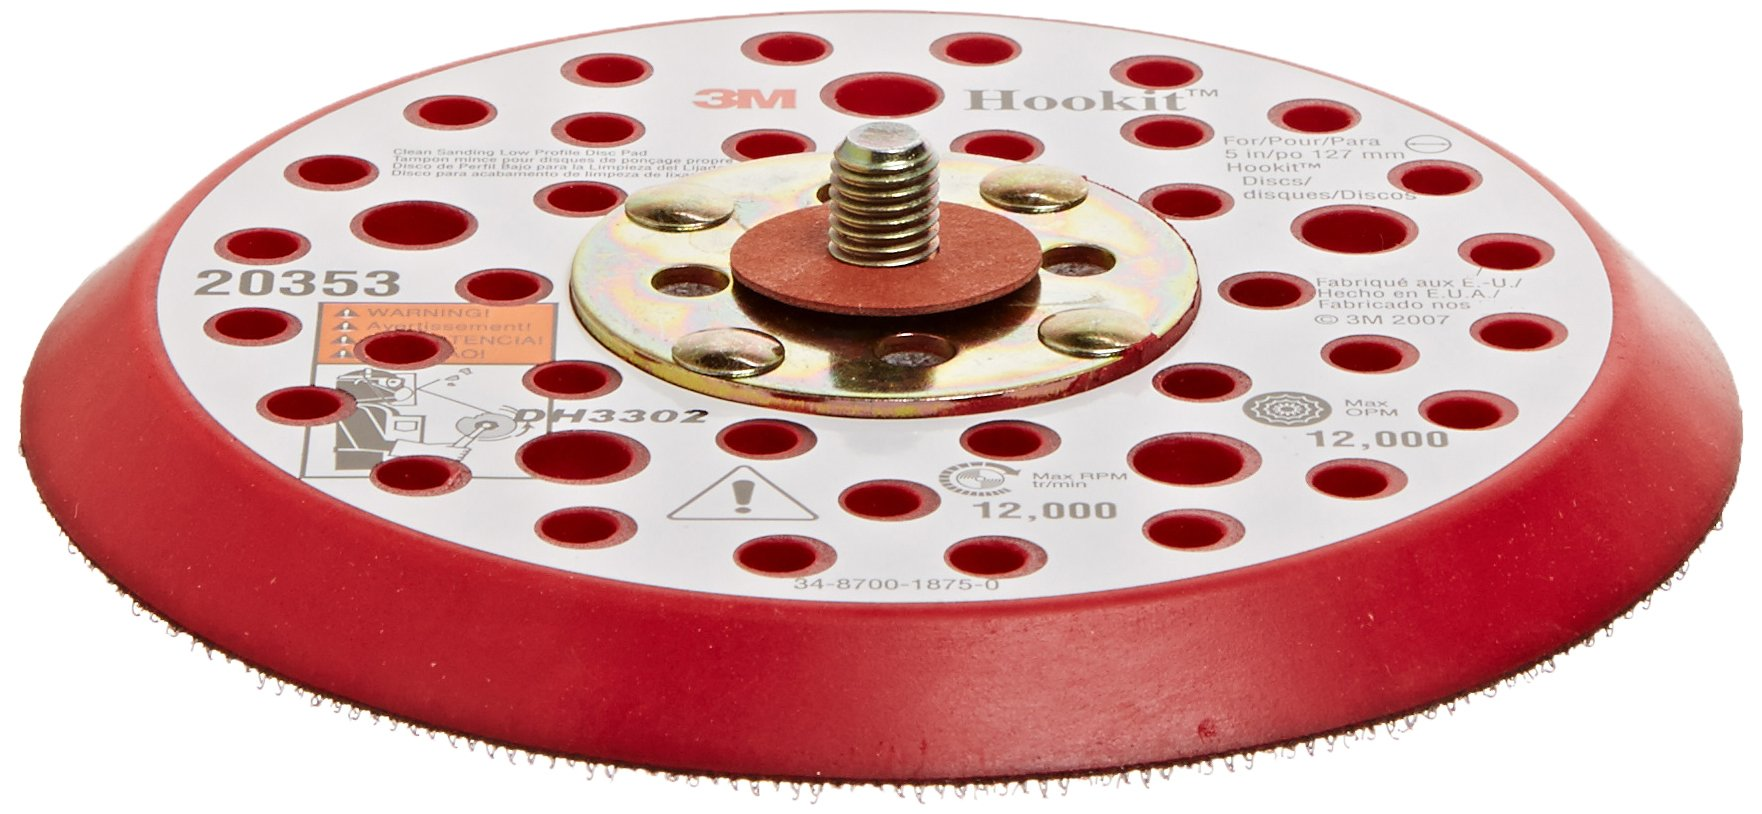 3M Hookit Clean Sanding Low Profile Disc Pad 20353, Hook and Loop Attachment, 5'' Diameter x 3/8'' Thick, 5/16''-24 External Thread, 44 Holes, Red by Cubitron